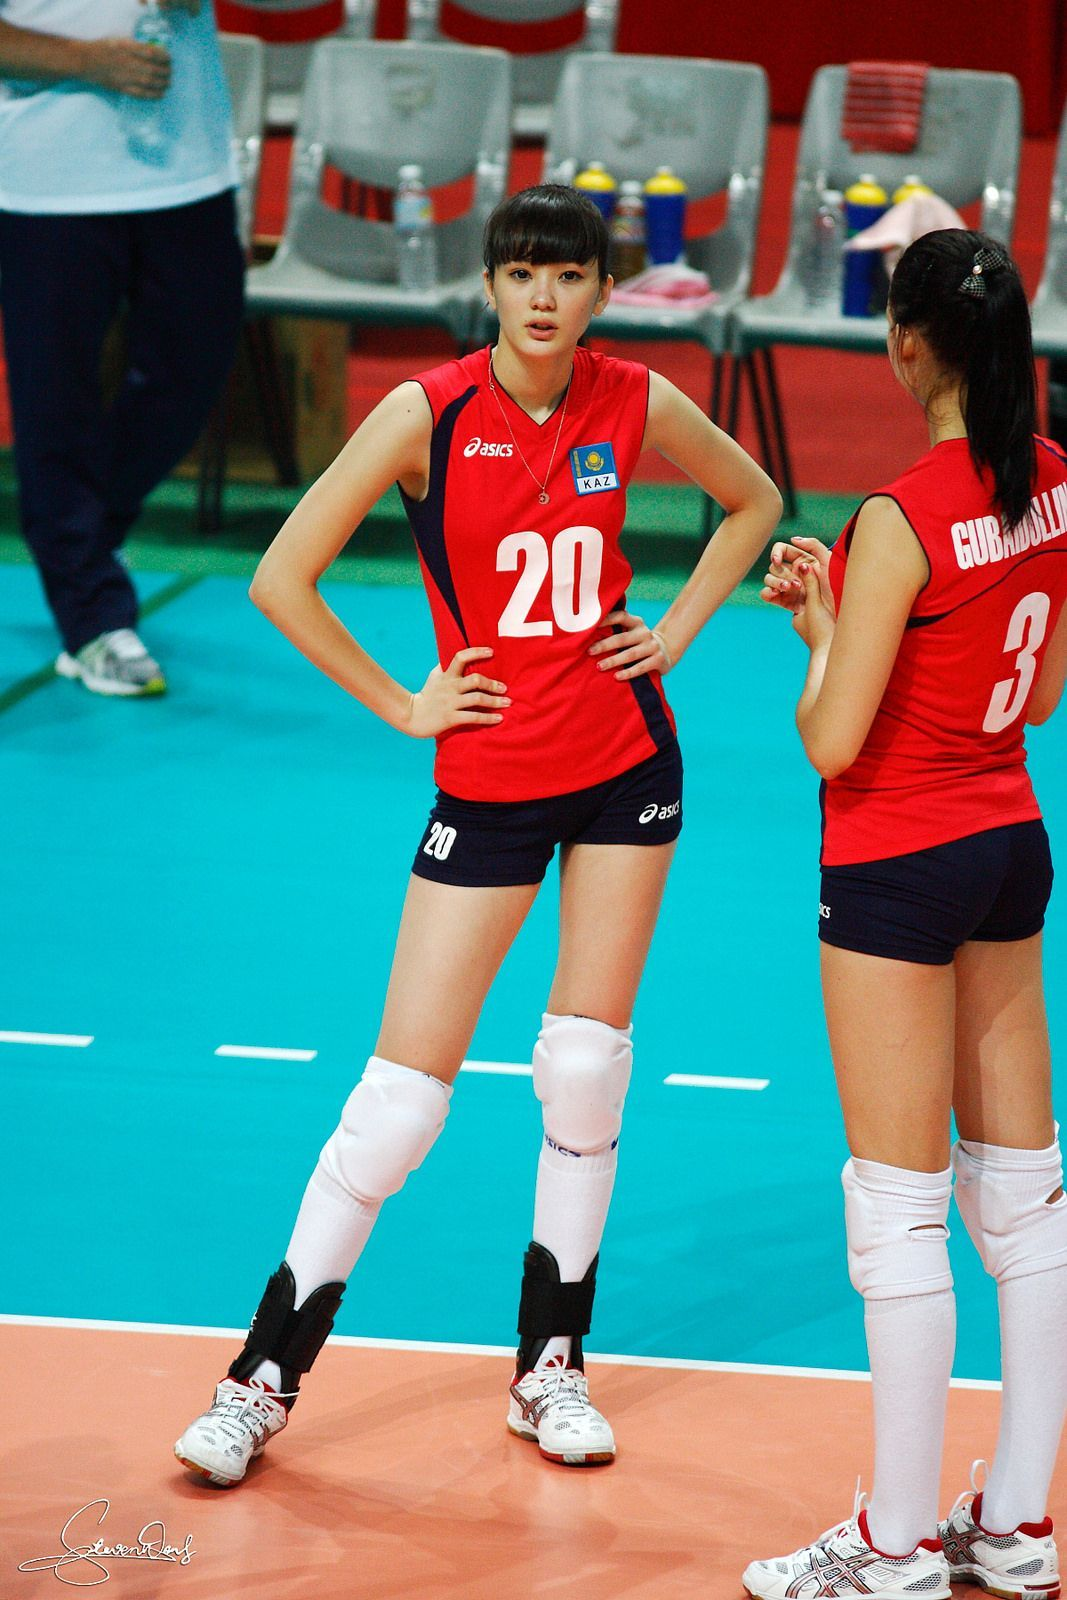 Volleyball Players In 2020 Female Volleyball Players Women Volleyball Volleyball Players